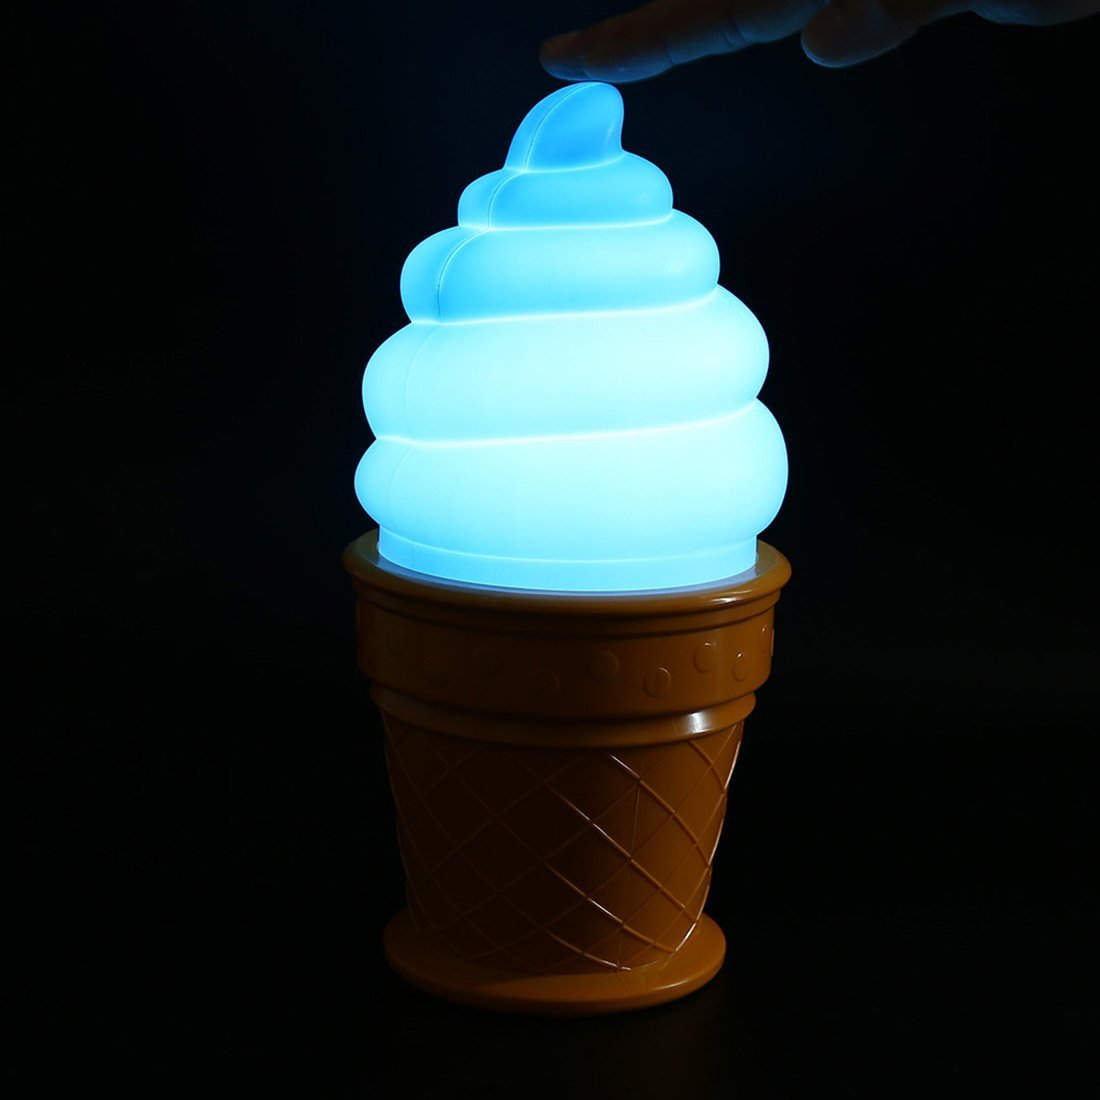 Lamps with night light - Novelty Led Night Light Ice Cream Lamp Led Lamp Night For Kids Children Cone Shaped Desk Table Lights For Bedroom Amazon Co Uk Kitchen Home